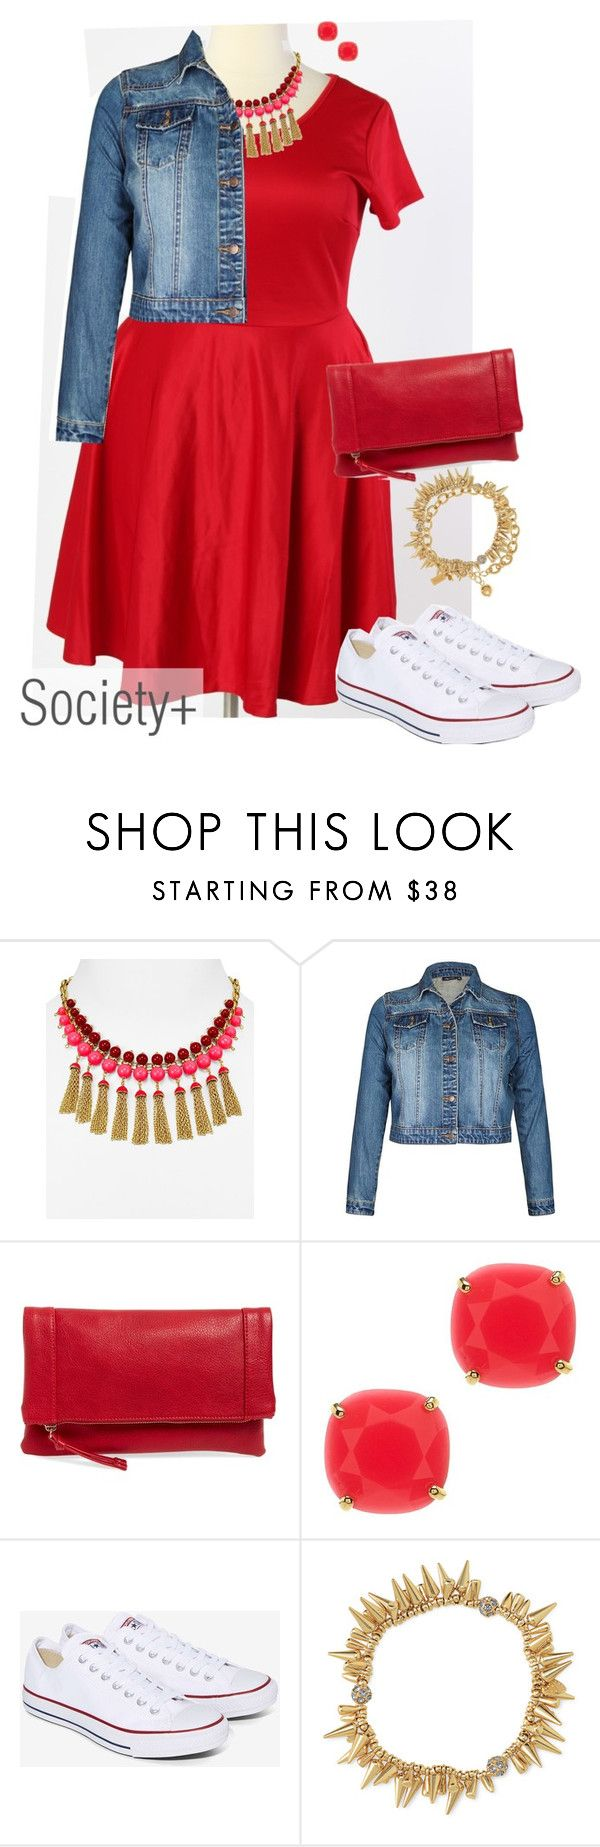 """""""Plus Size Red Skater Dress - Society+"""" by iamsocietyplus on Polyvore featuring Kate Spade, Sole Society, Converse, Stella & Dot, plussize, plussizefashion, societyplus and iamsocietyplus"""